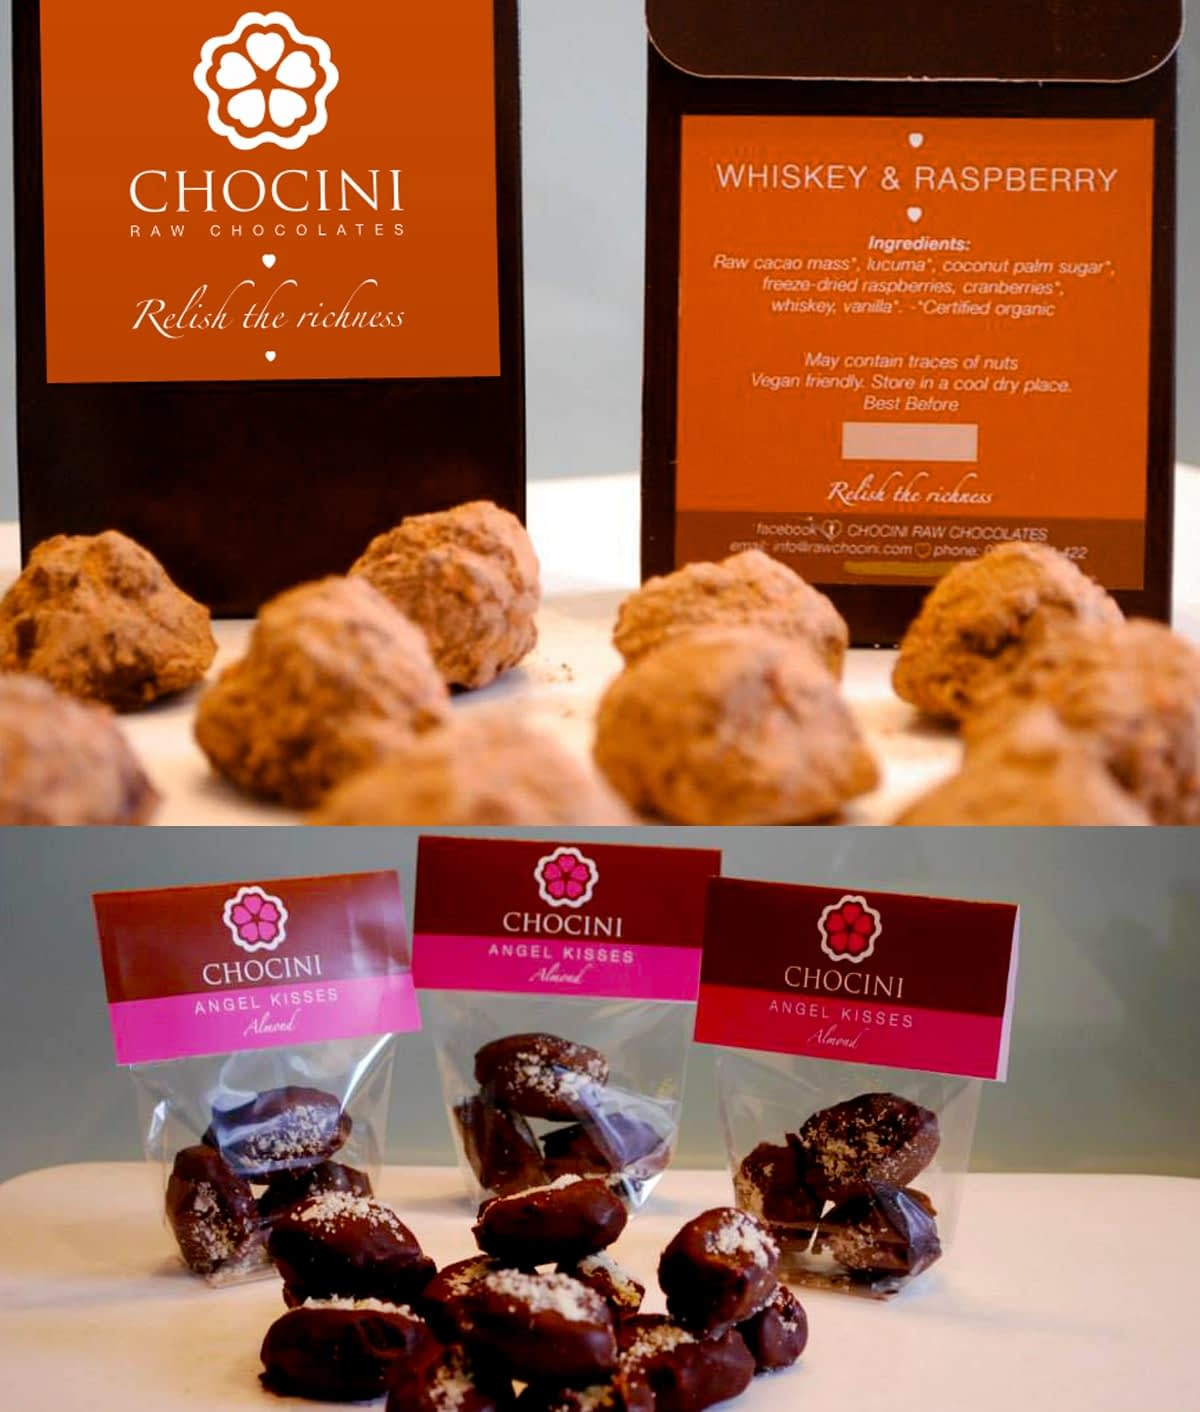 Chocini logo and packaging post images